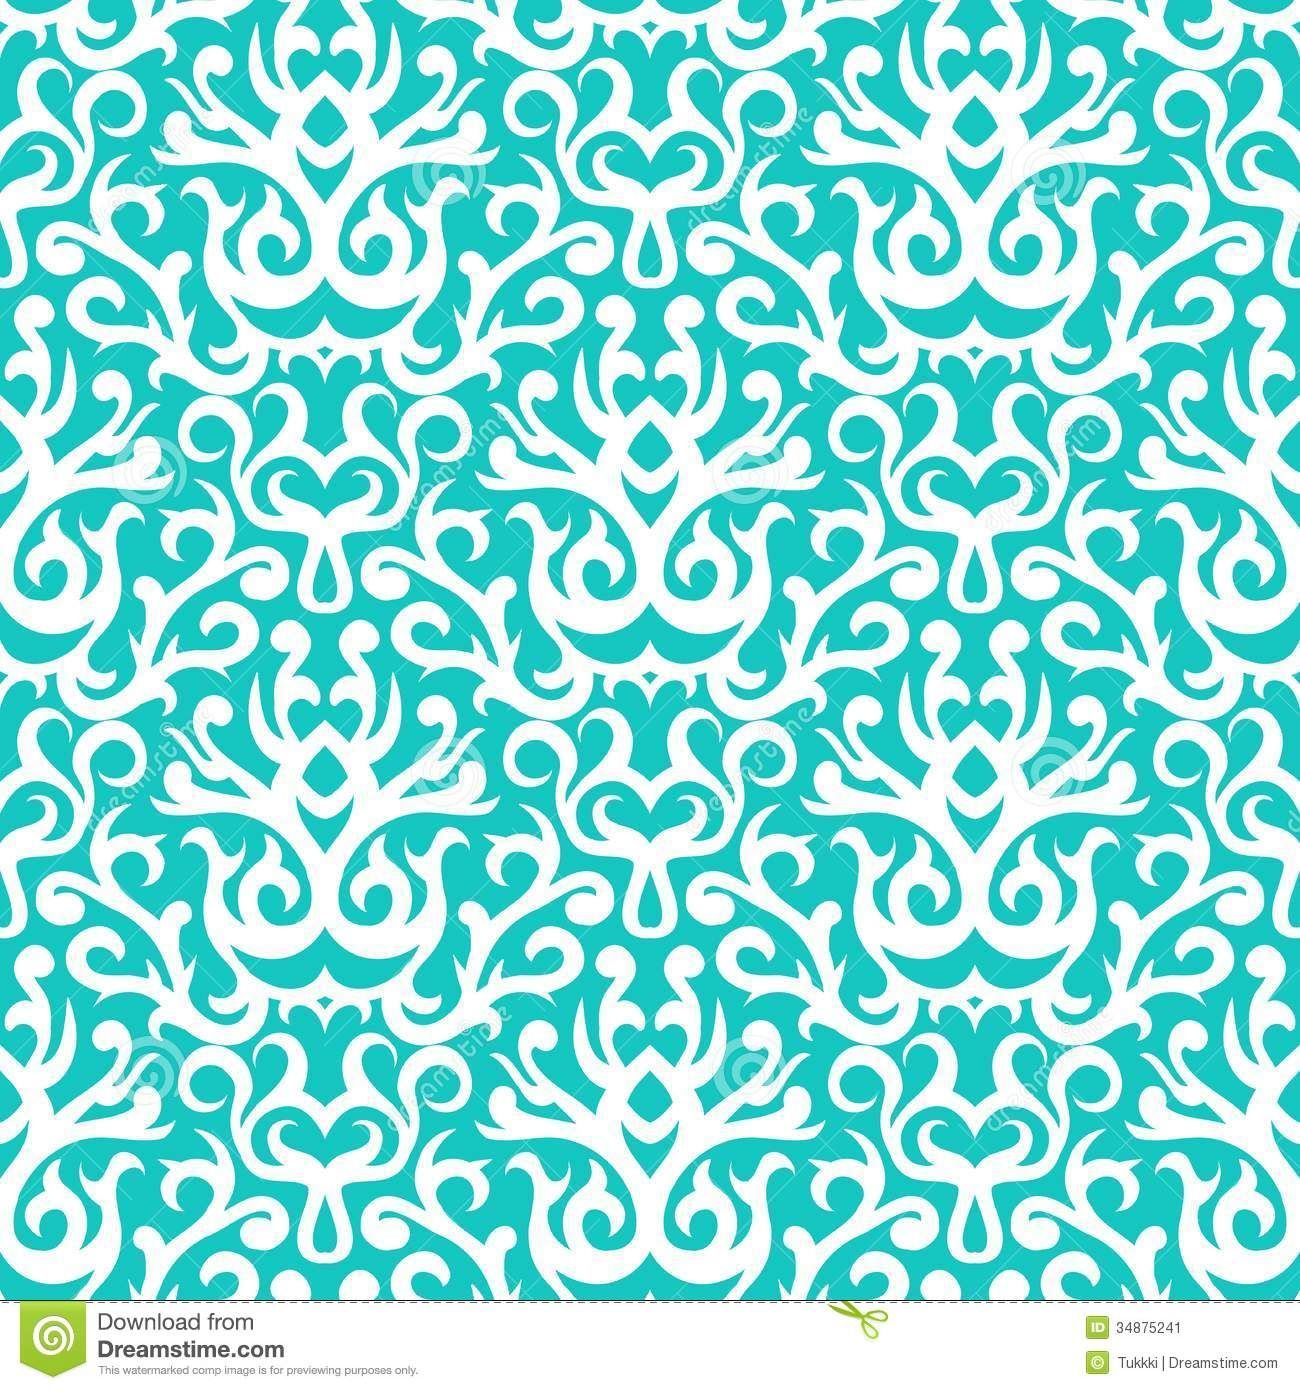 Damask Pattern In White On Turquoise Download From Over